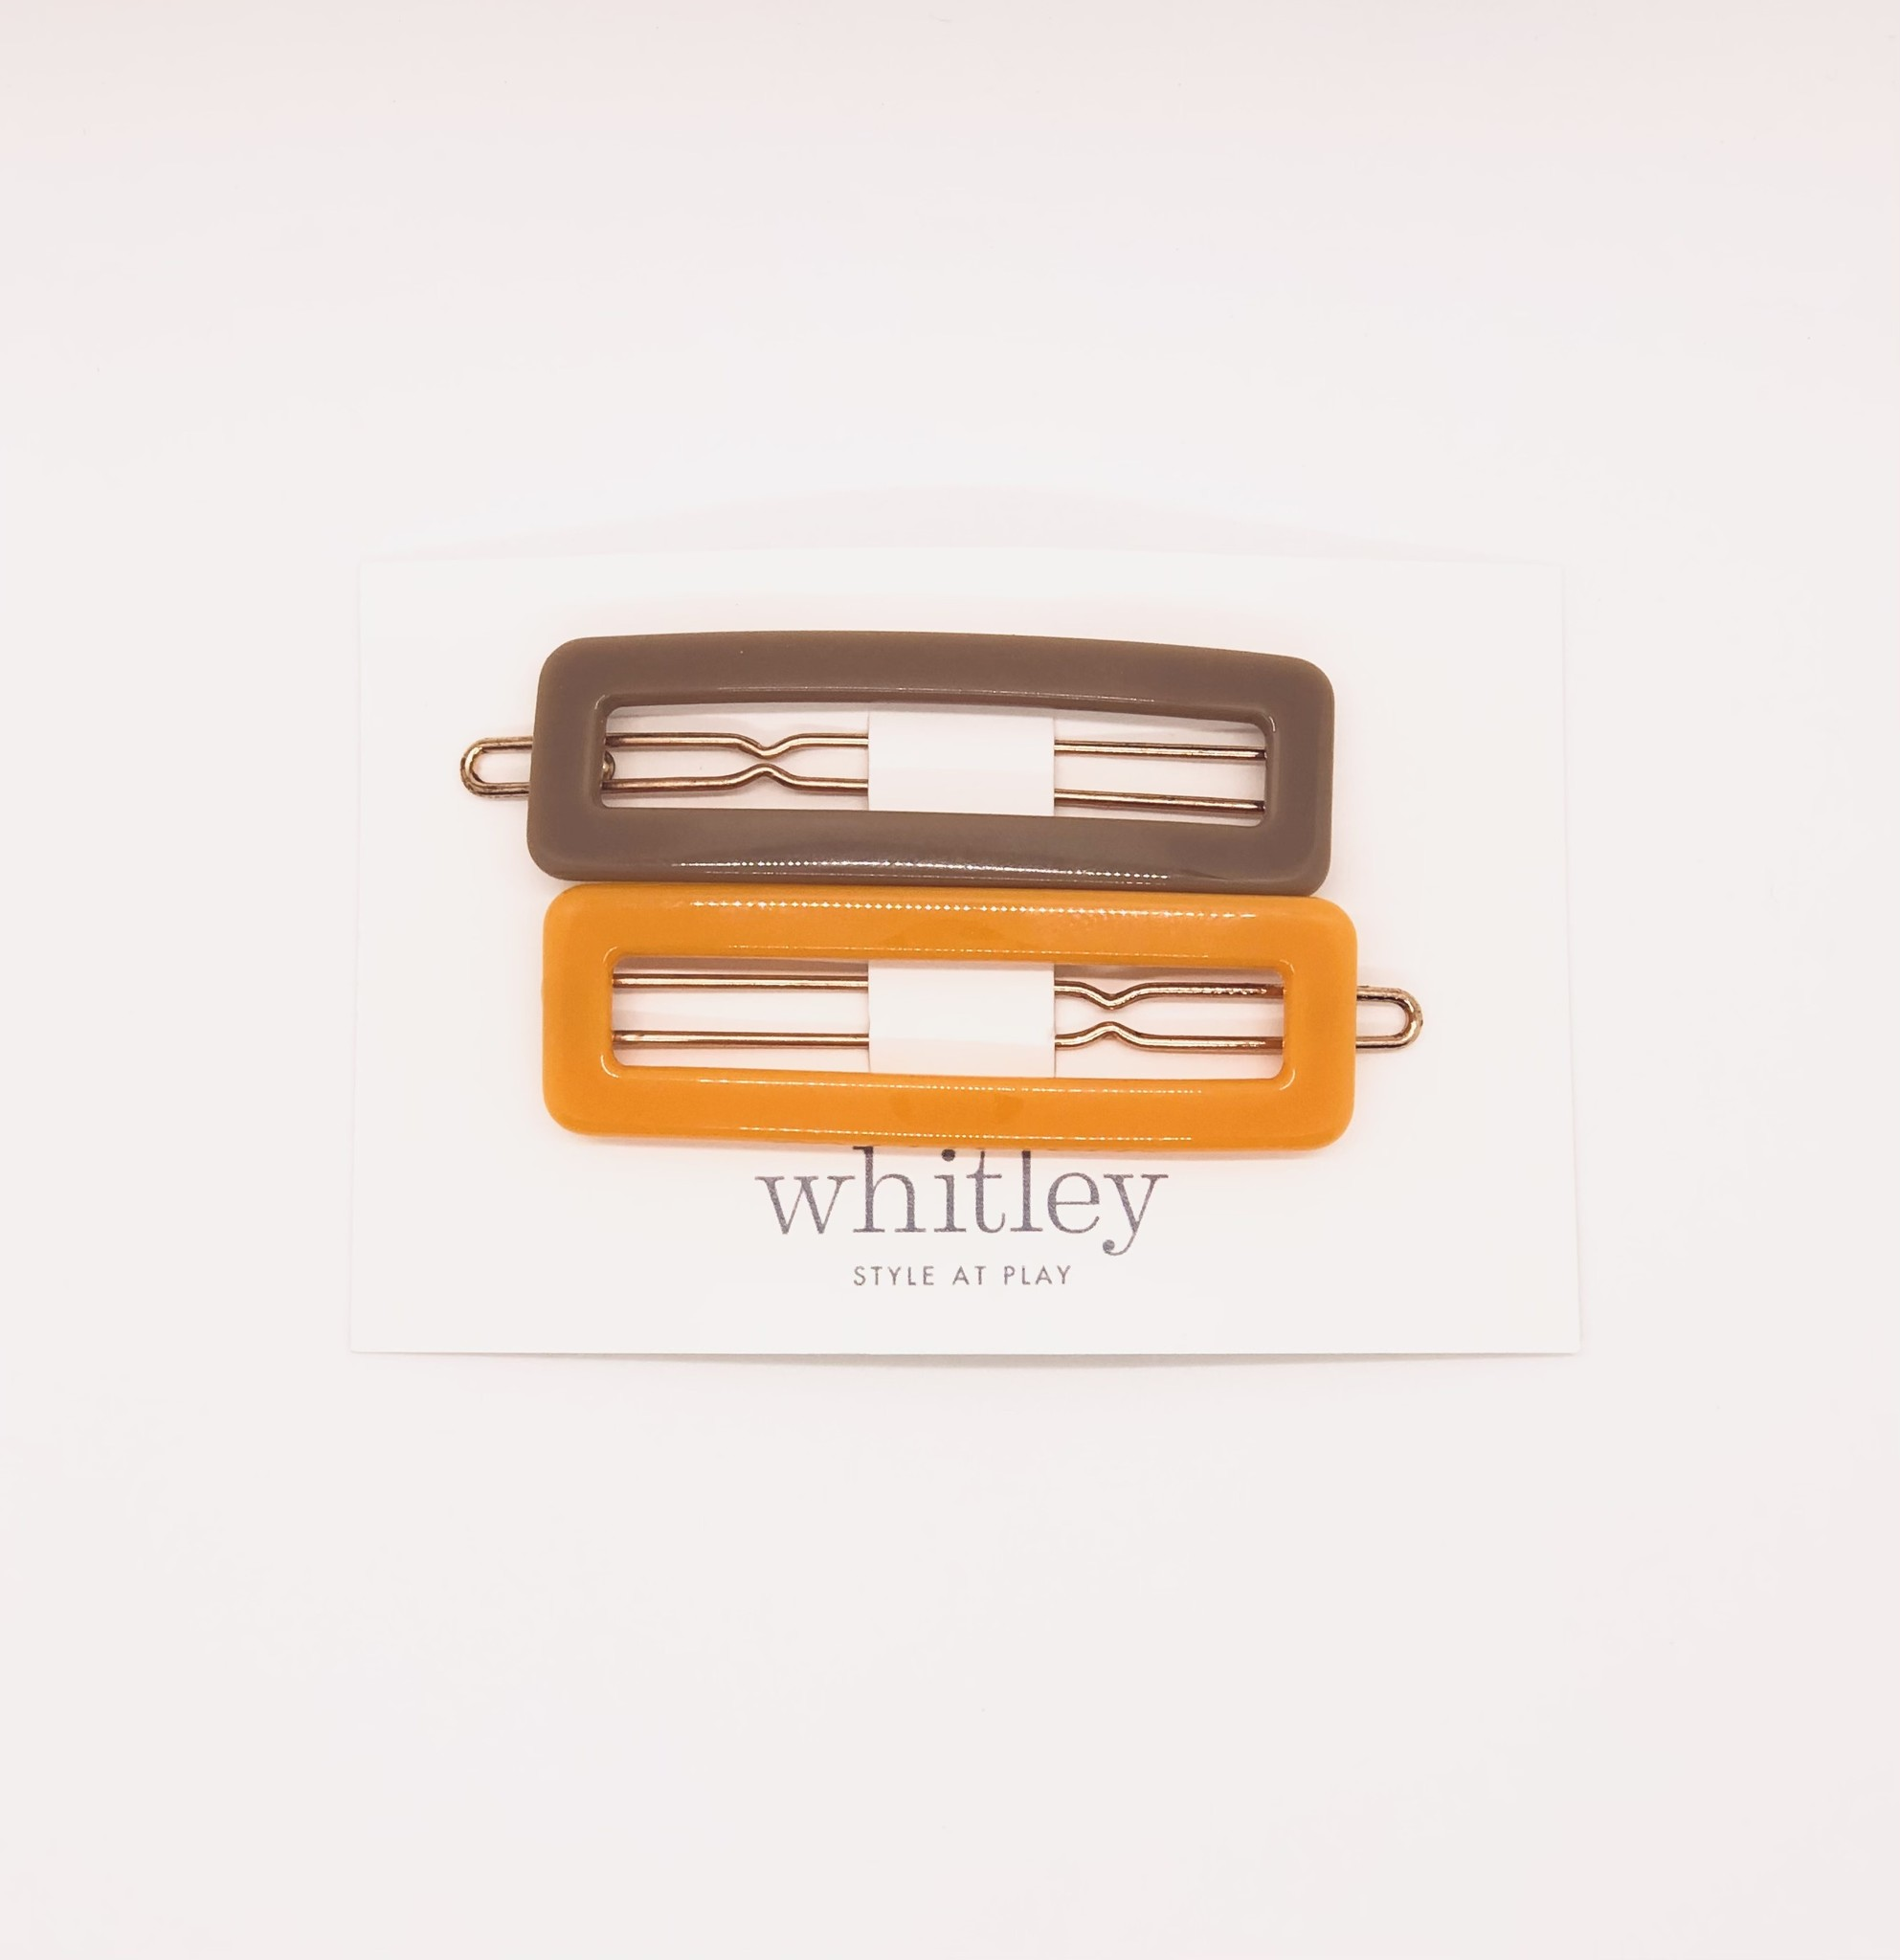 Whitley - WH WH ACHA - Taupe + Orange Rectangle Hair Clip Duo